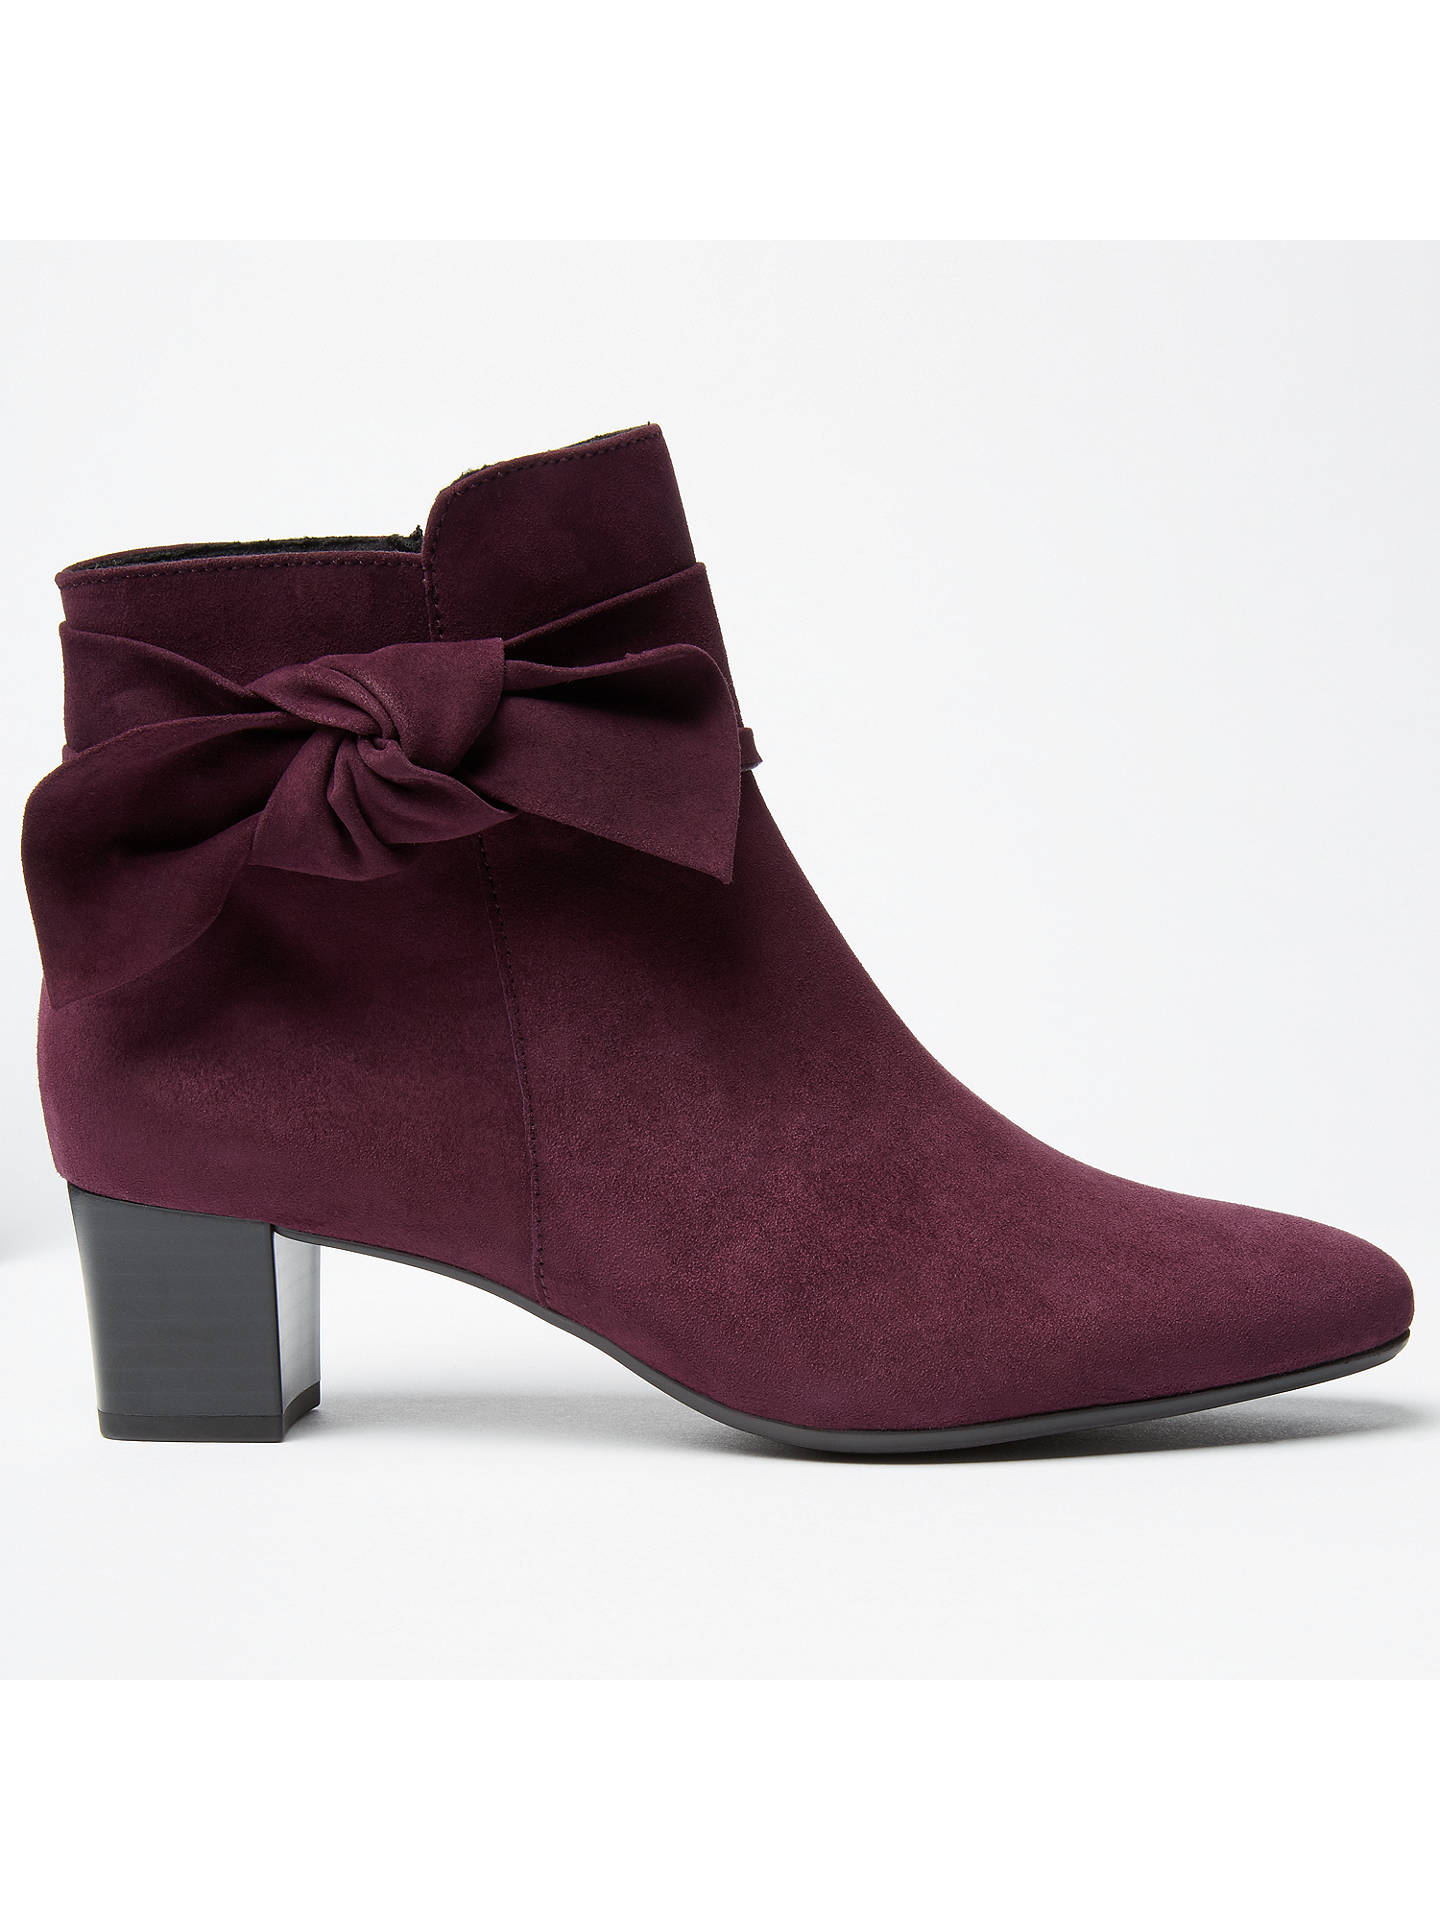 633ecc5c2c2 Peter Kaiser Okkani Block Heeled Ankle Boots at John Lewis & Partners